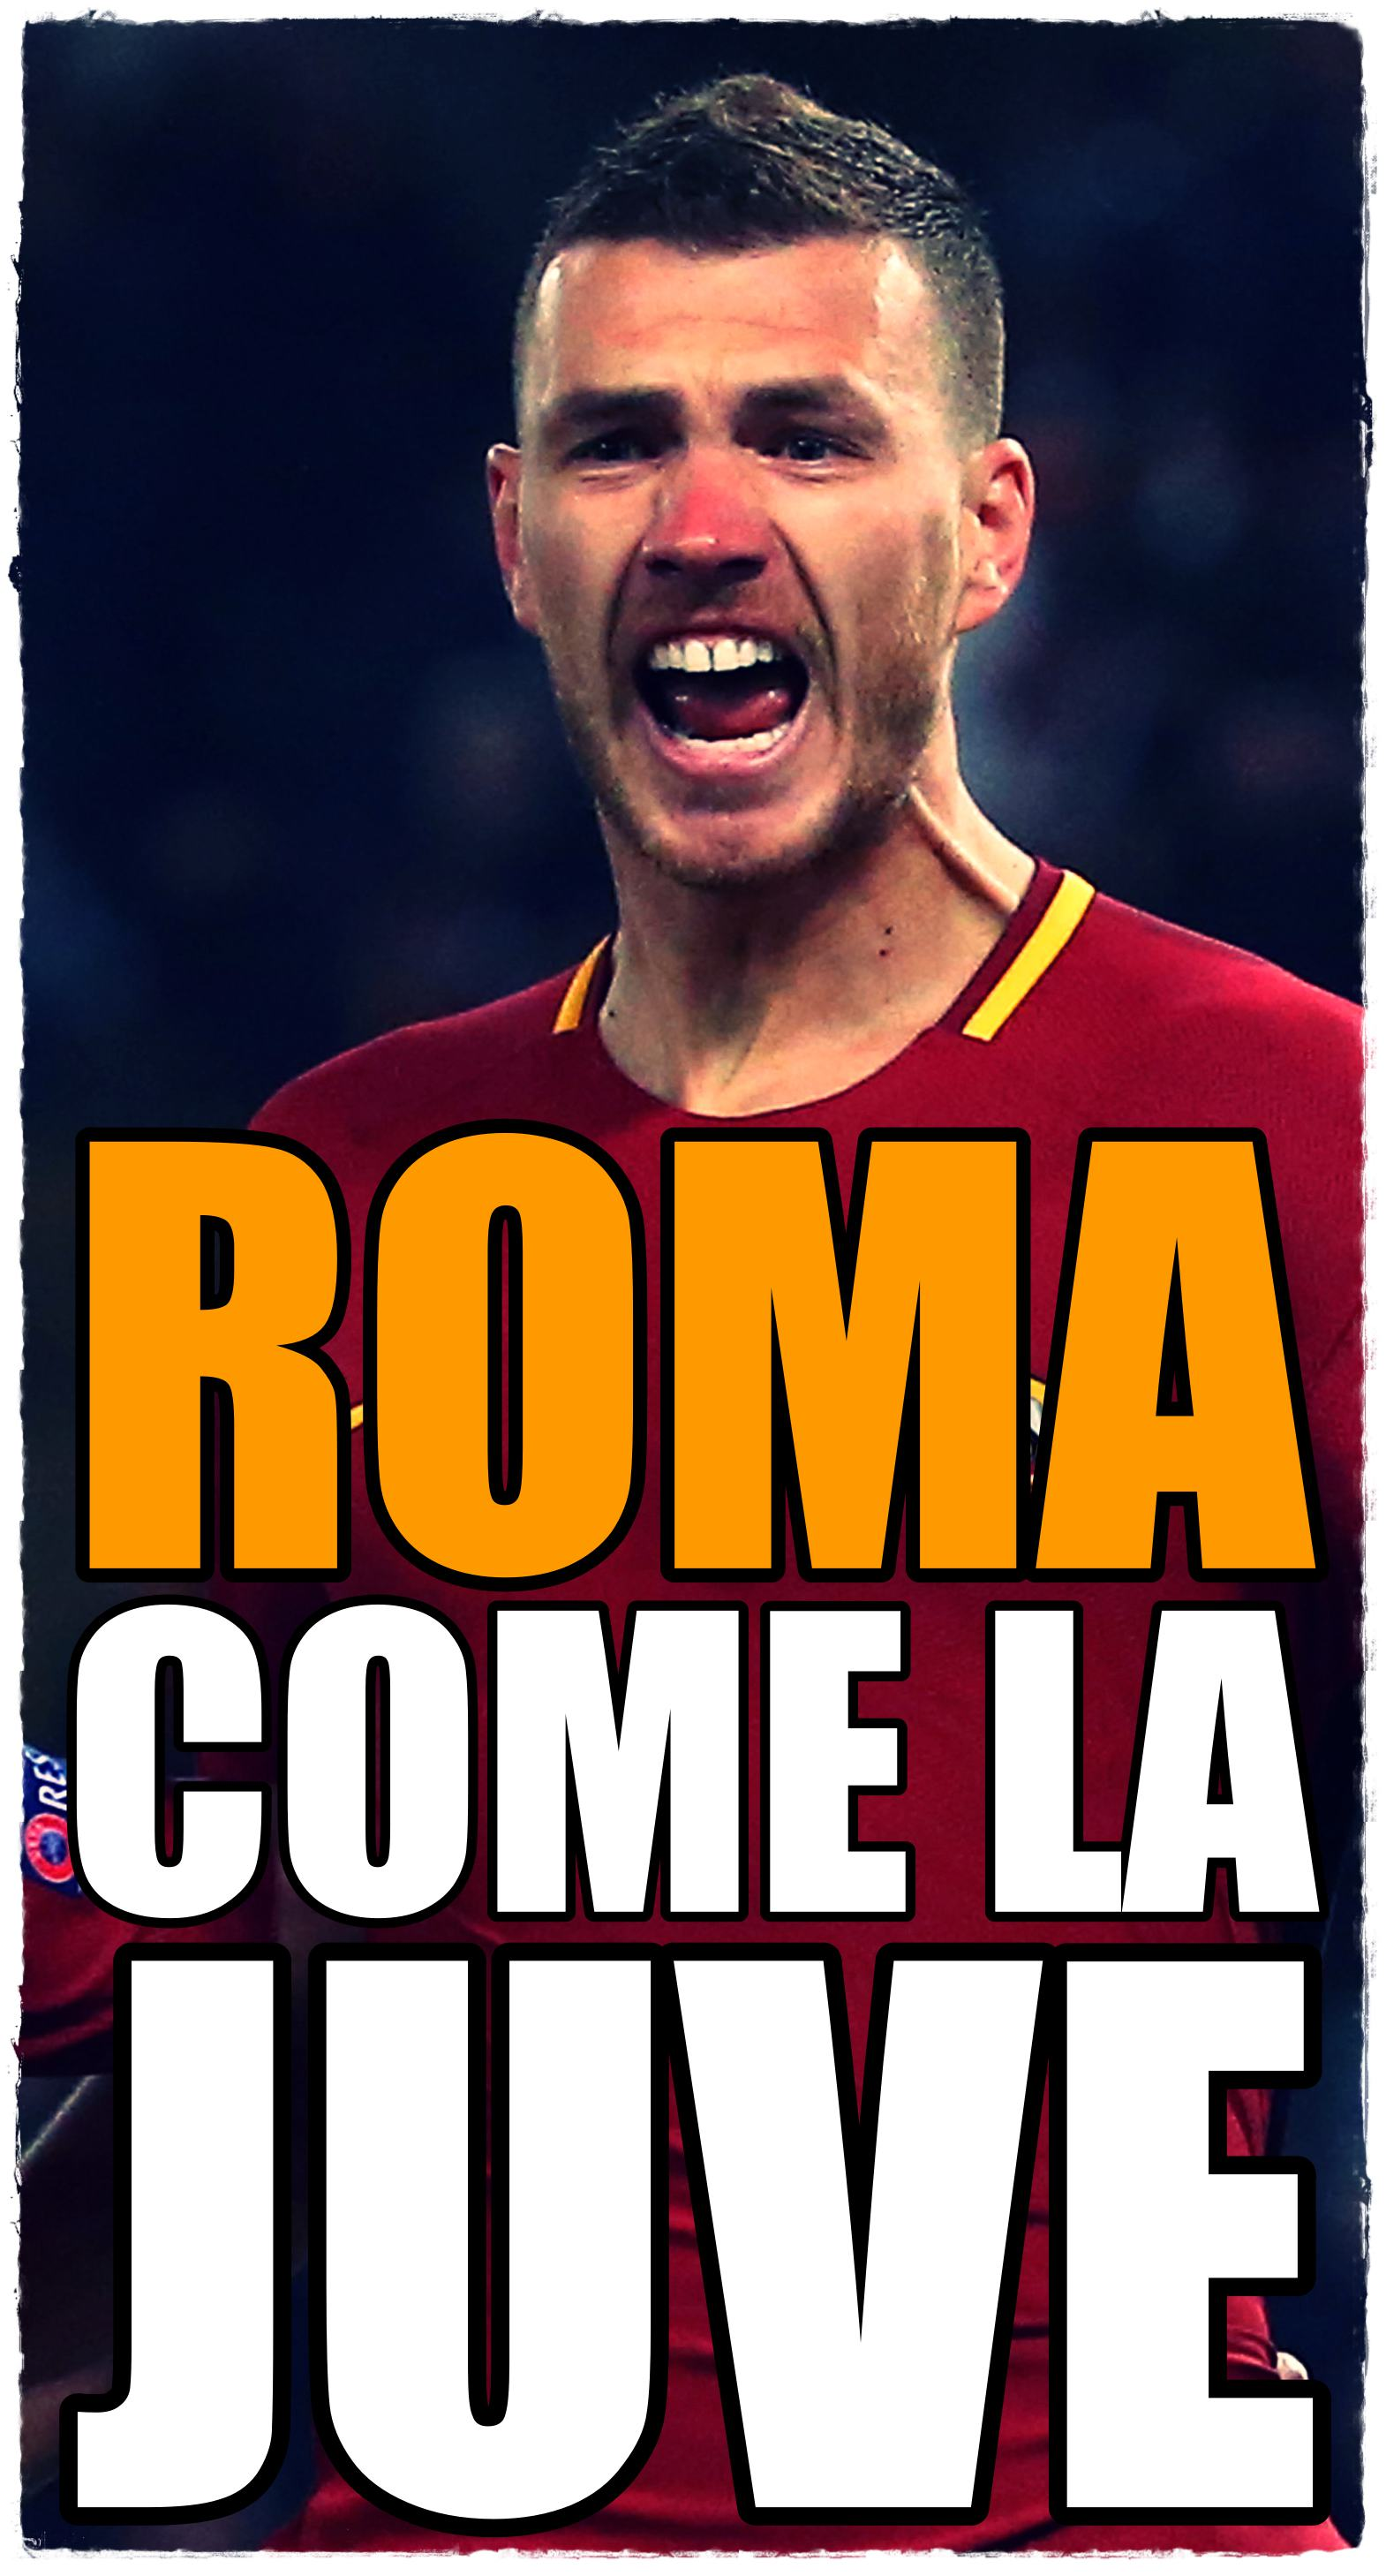 Champions League Round of 16 Second Leg - AS Roma vs Shakhtar Donetsk